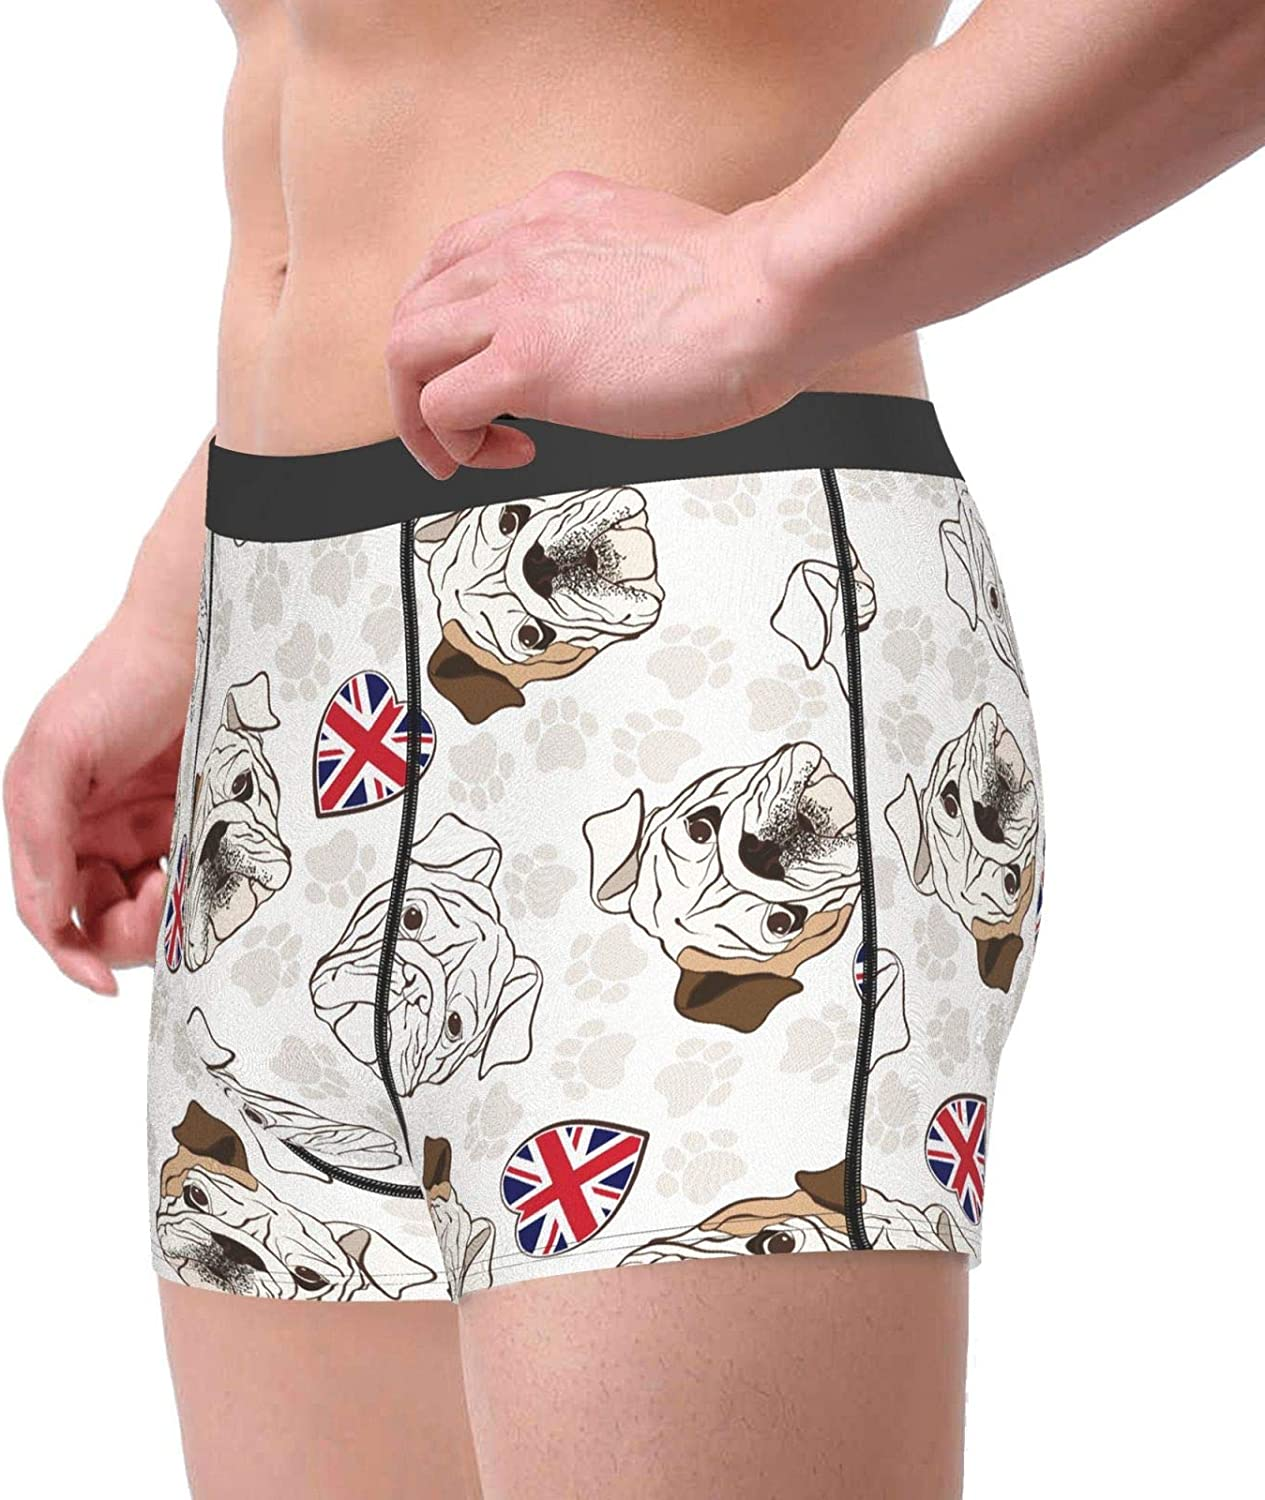 Men's Boxer Briefs No Ride-up Breathable Comfortable Sport Underwear Trunks for Men, Youth